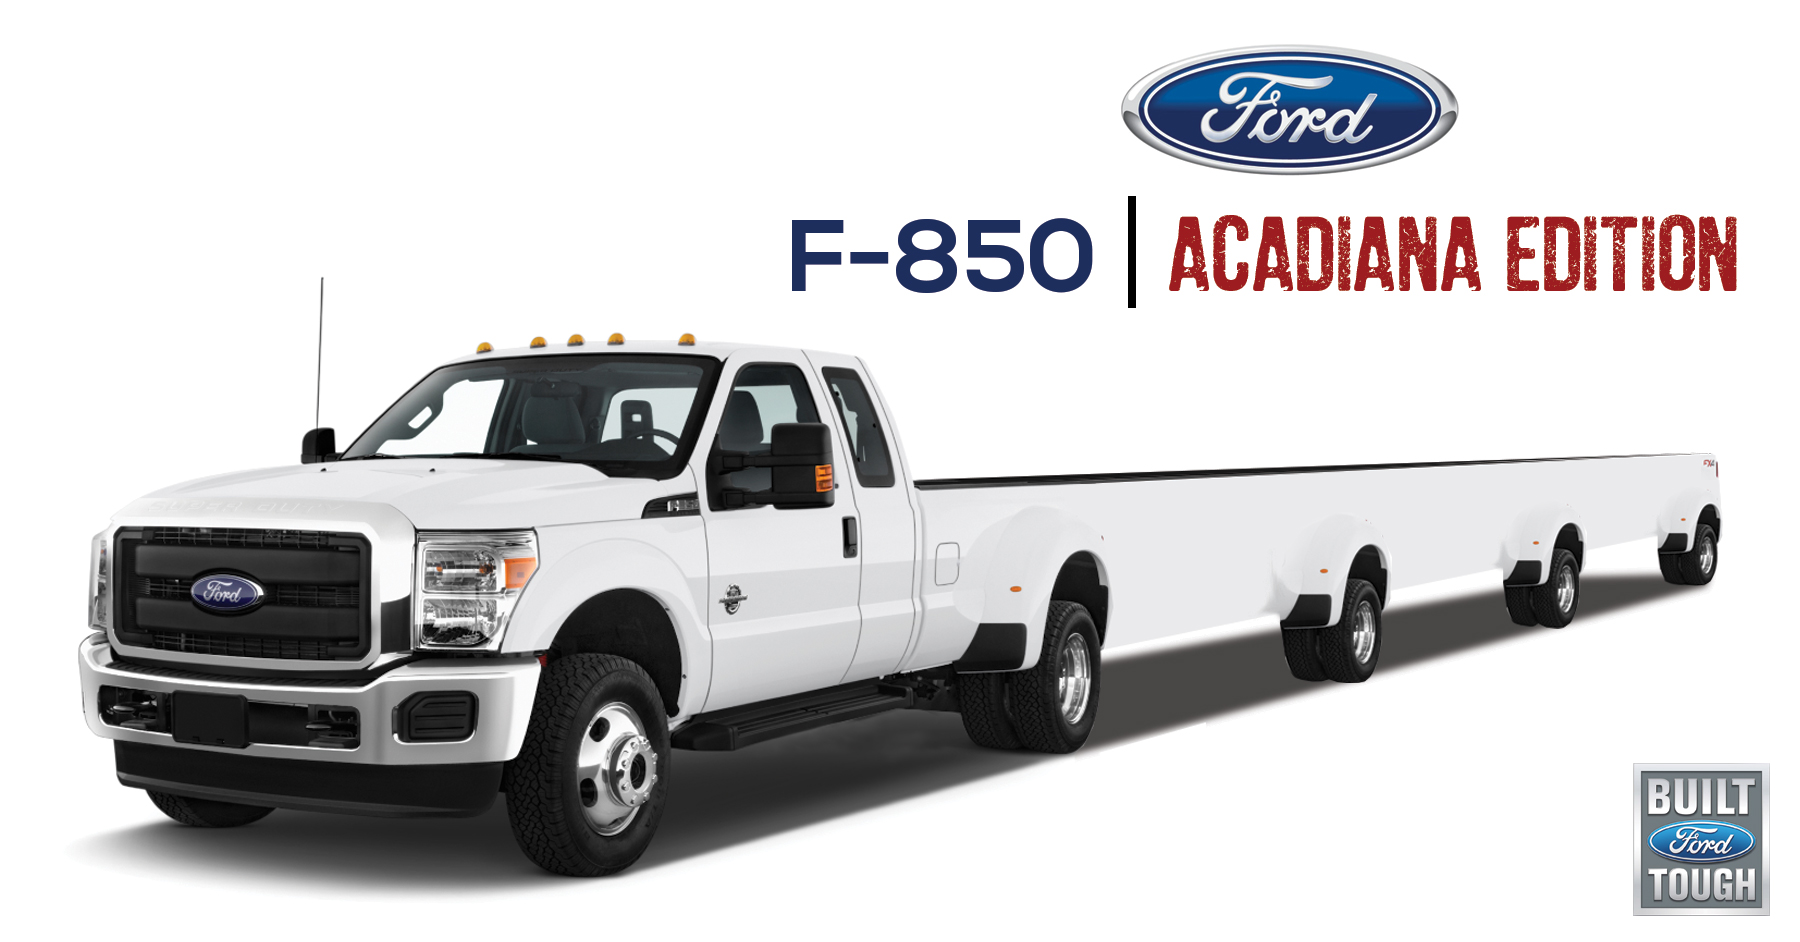 ford announces new f 850 acadiana edition the daily crawfish the daily crawfish